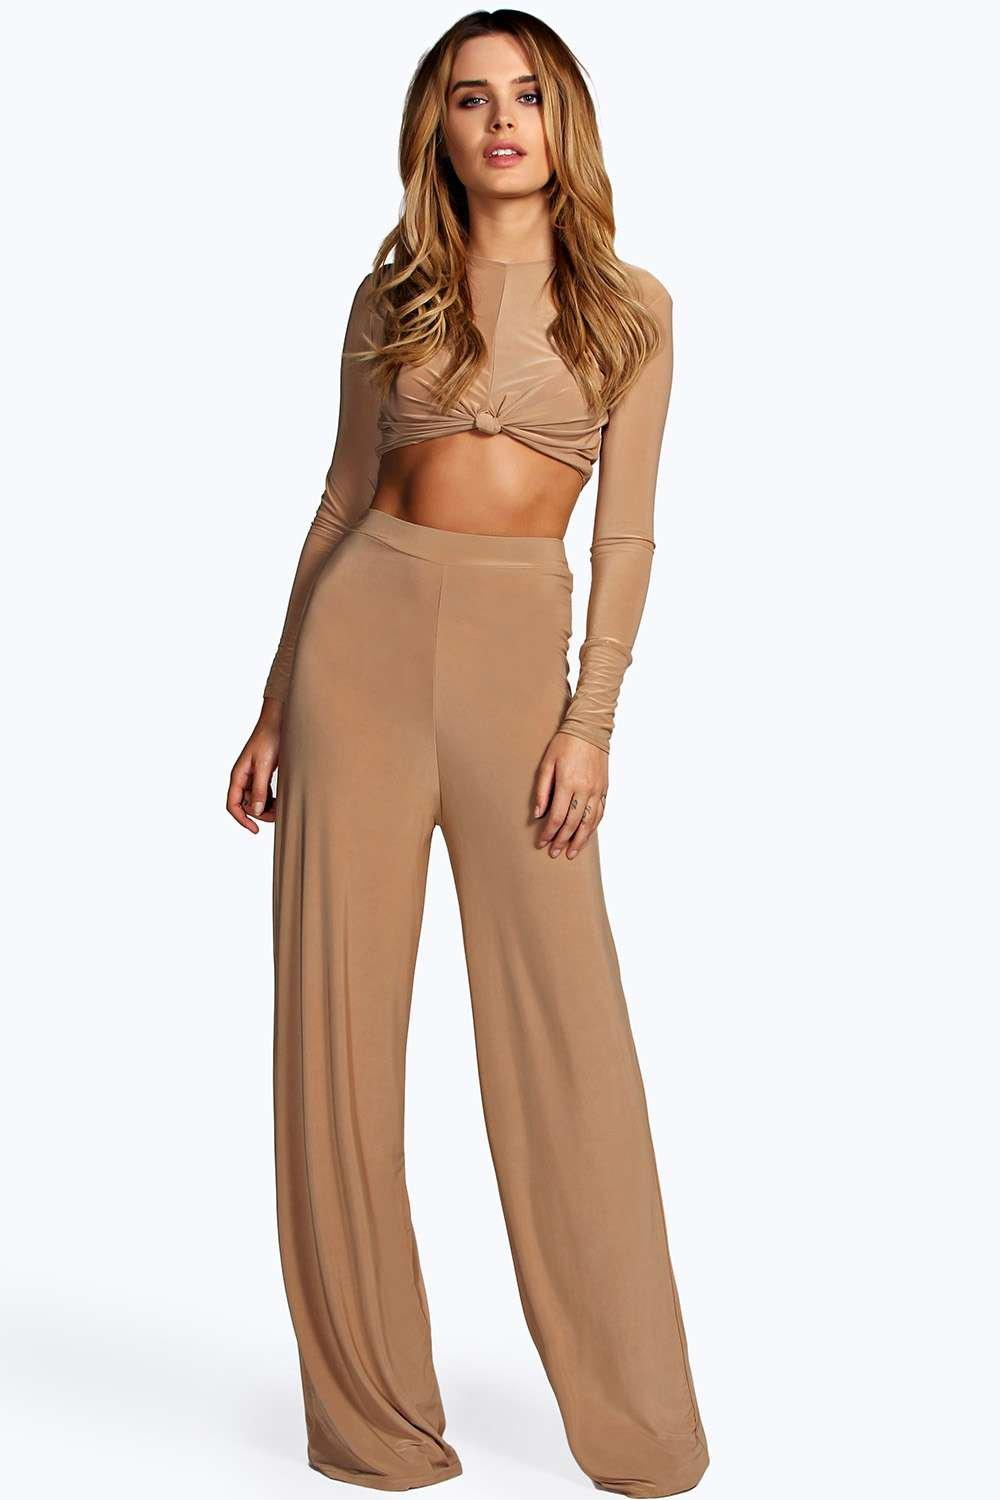 boohoo shannon pantalon palazzo camel pr s du corps taille. Black Bedroom Furniture Sets. Home Design Ideas